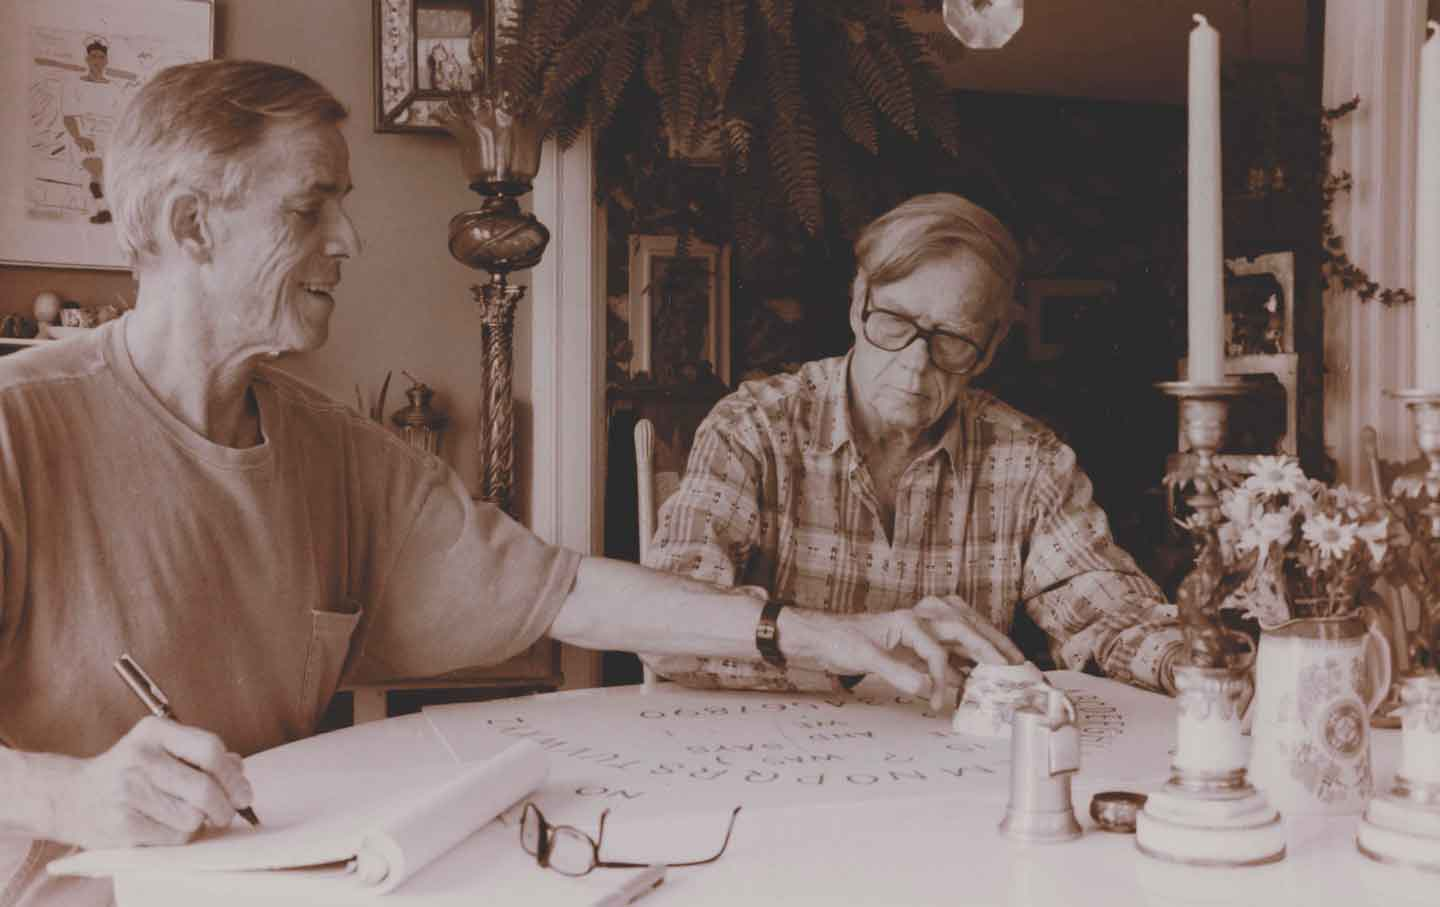 James Merrill (left) and David Jackson at the Ouija board in 1983.